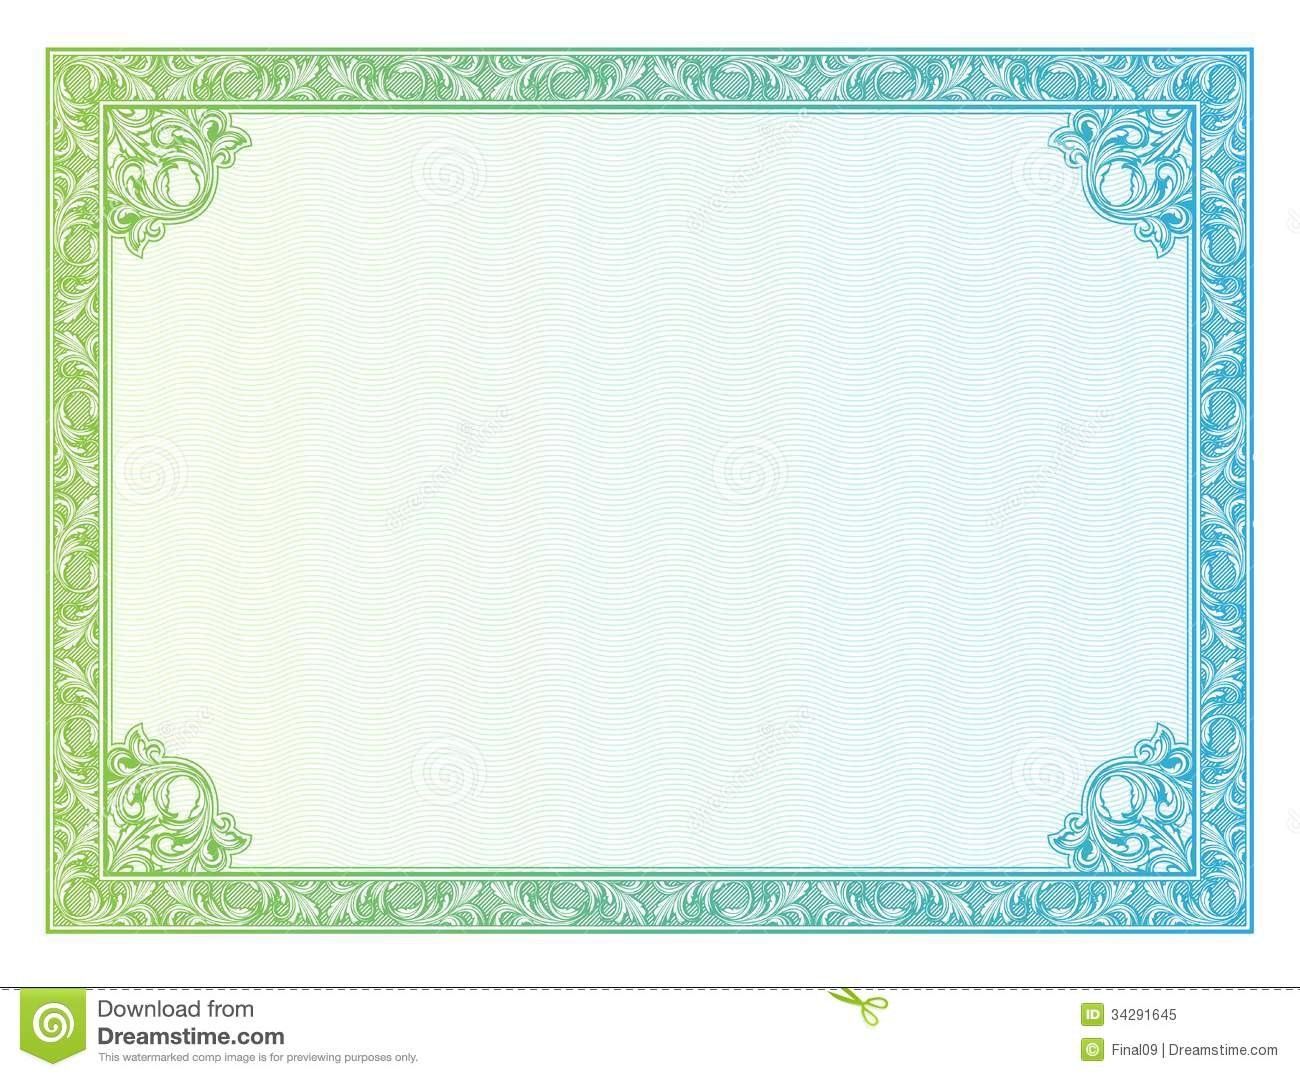 Template Border Diplomas, Certificate. Blank, Honor.  Certificate Borders Free Download